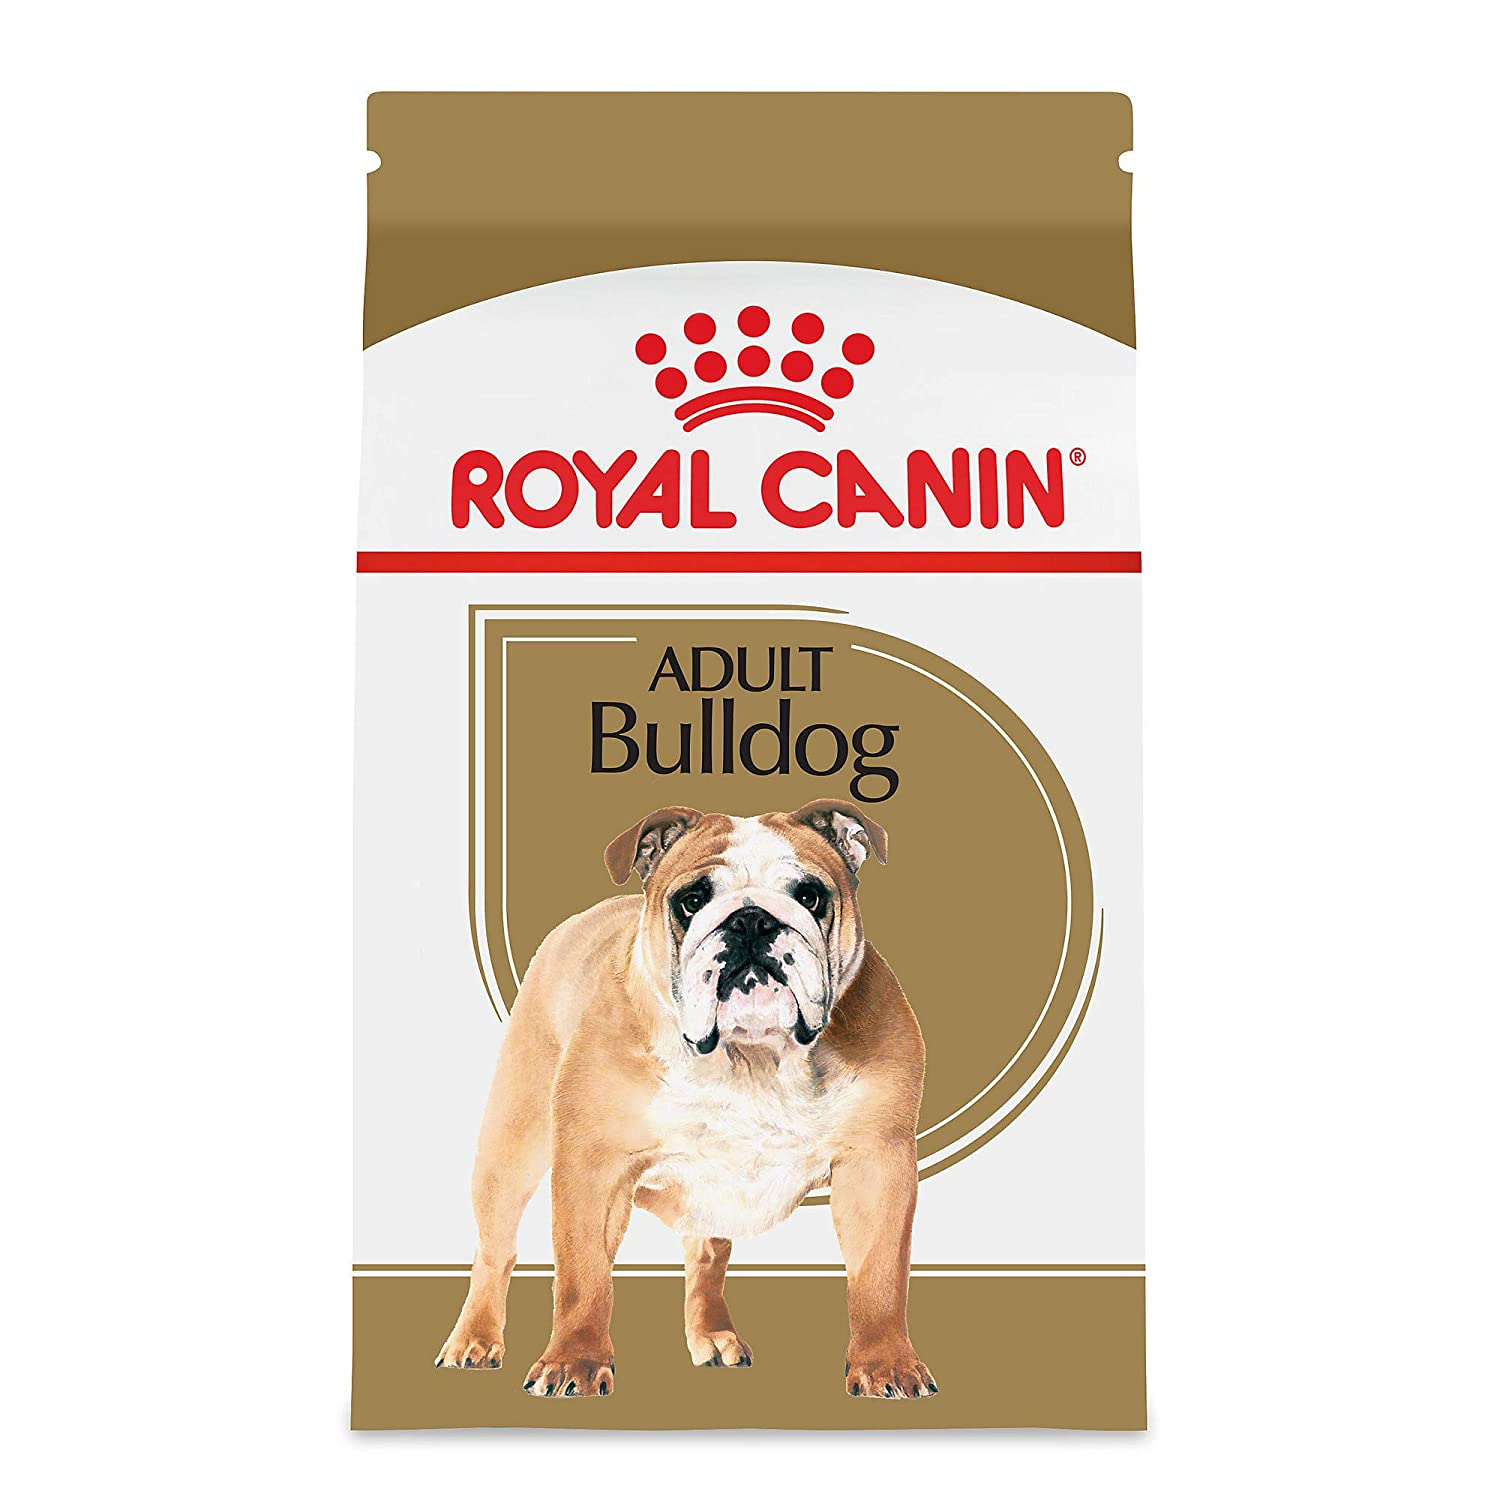 7. Royal Canin Bulldog Adult Dry Dog Food